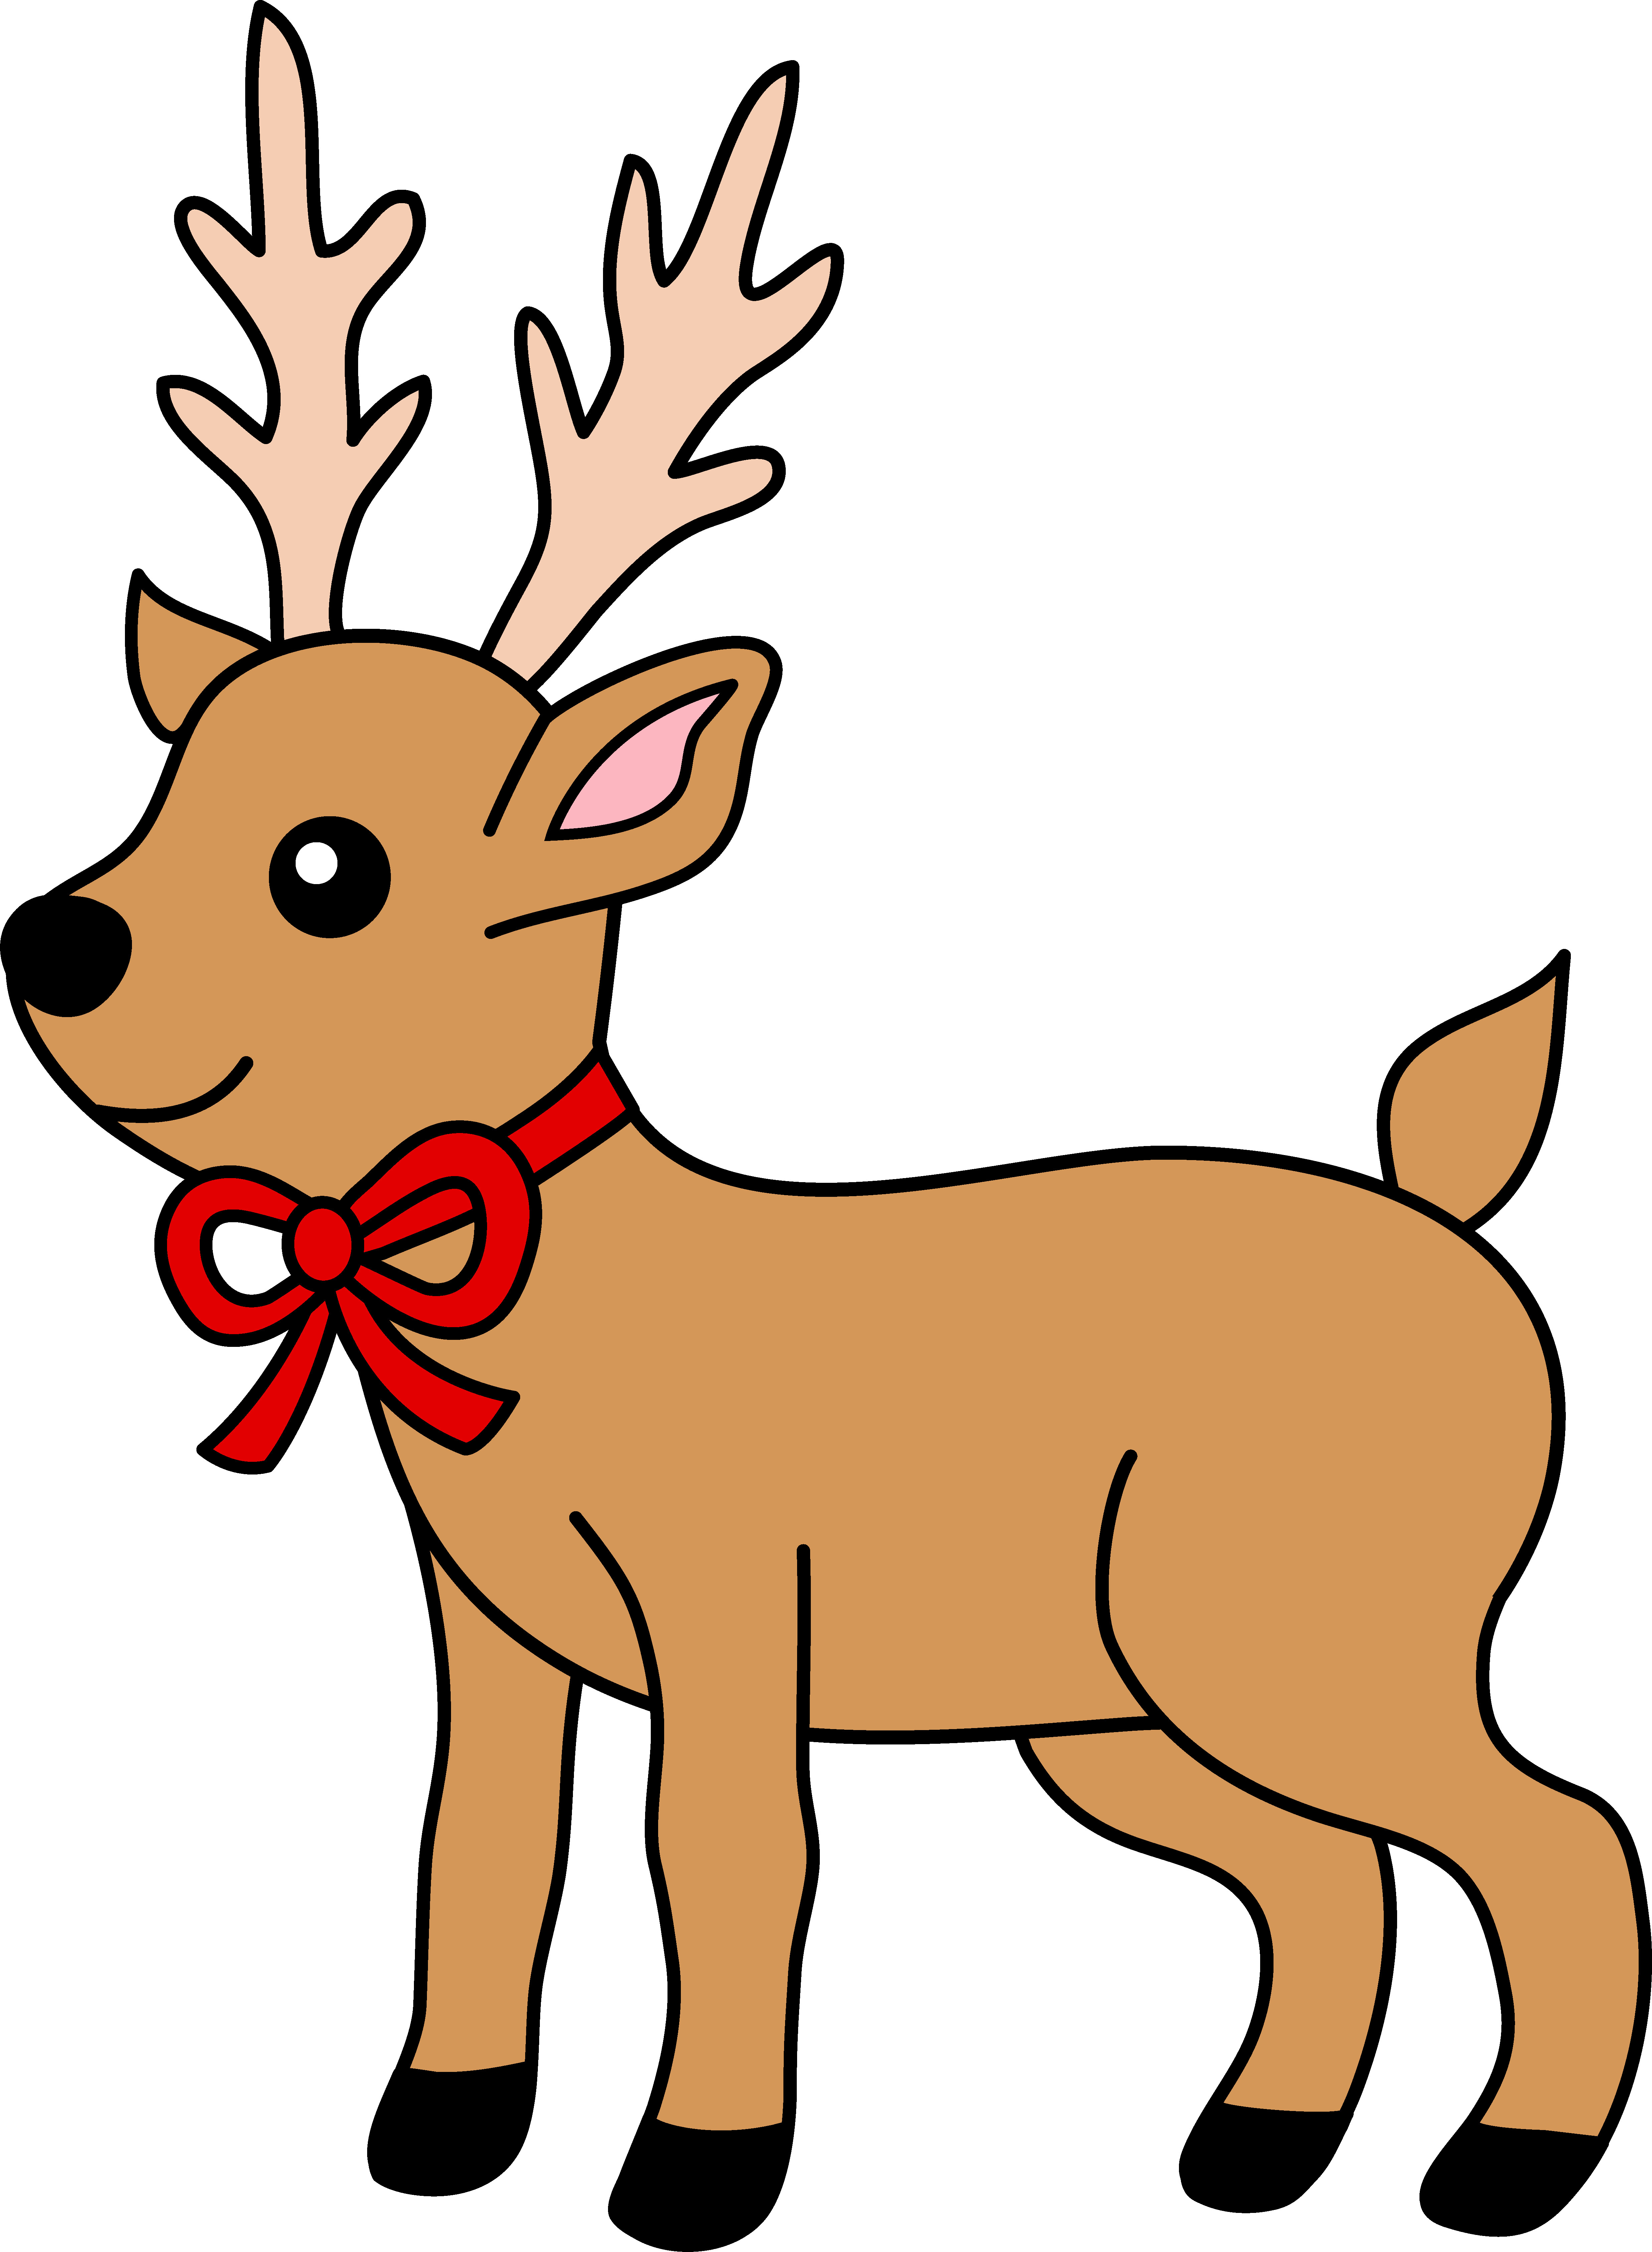 4945x6740 Christmas Reindeer With Red Ribbon Free Clip Art Incredible